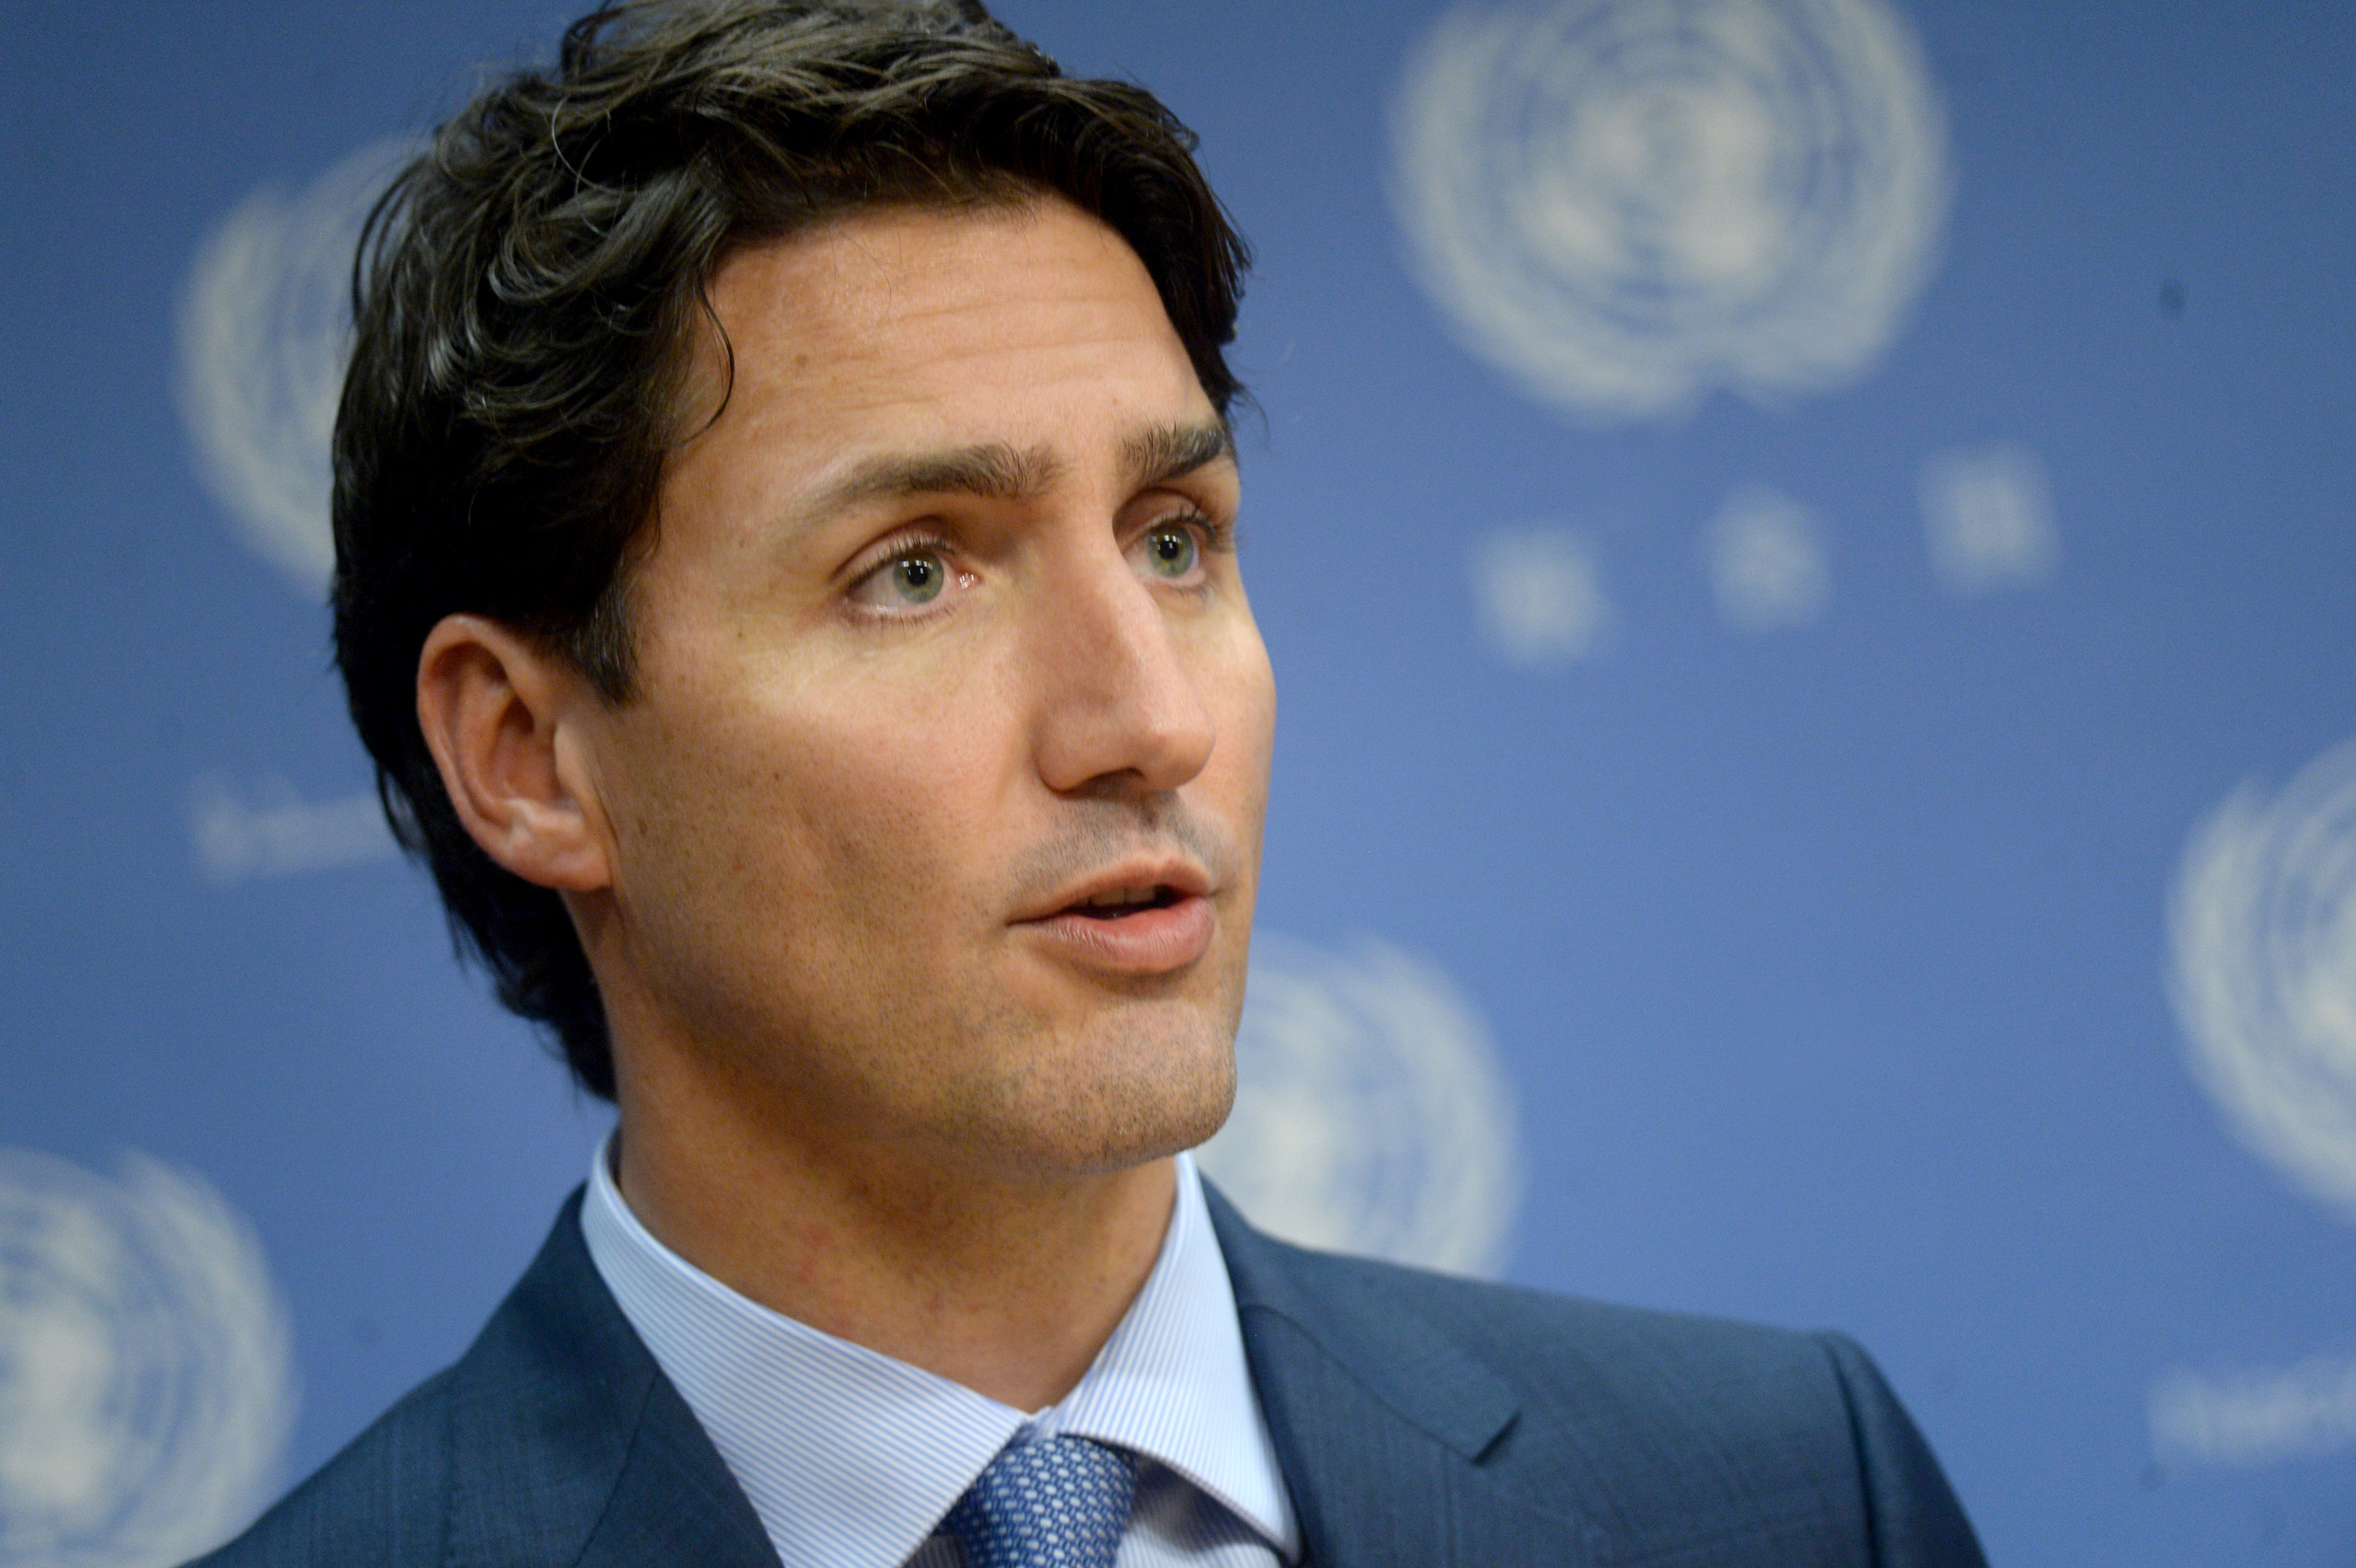 Canadian PM Justin Trudeau gives a press conference on the margins of the 71st session of UN General Assembly in New York City on Sept. 20, 2016.